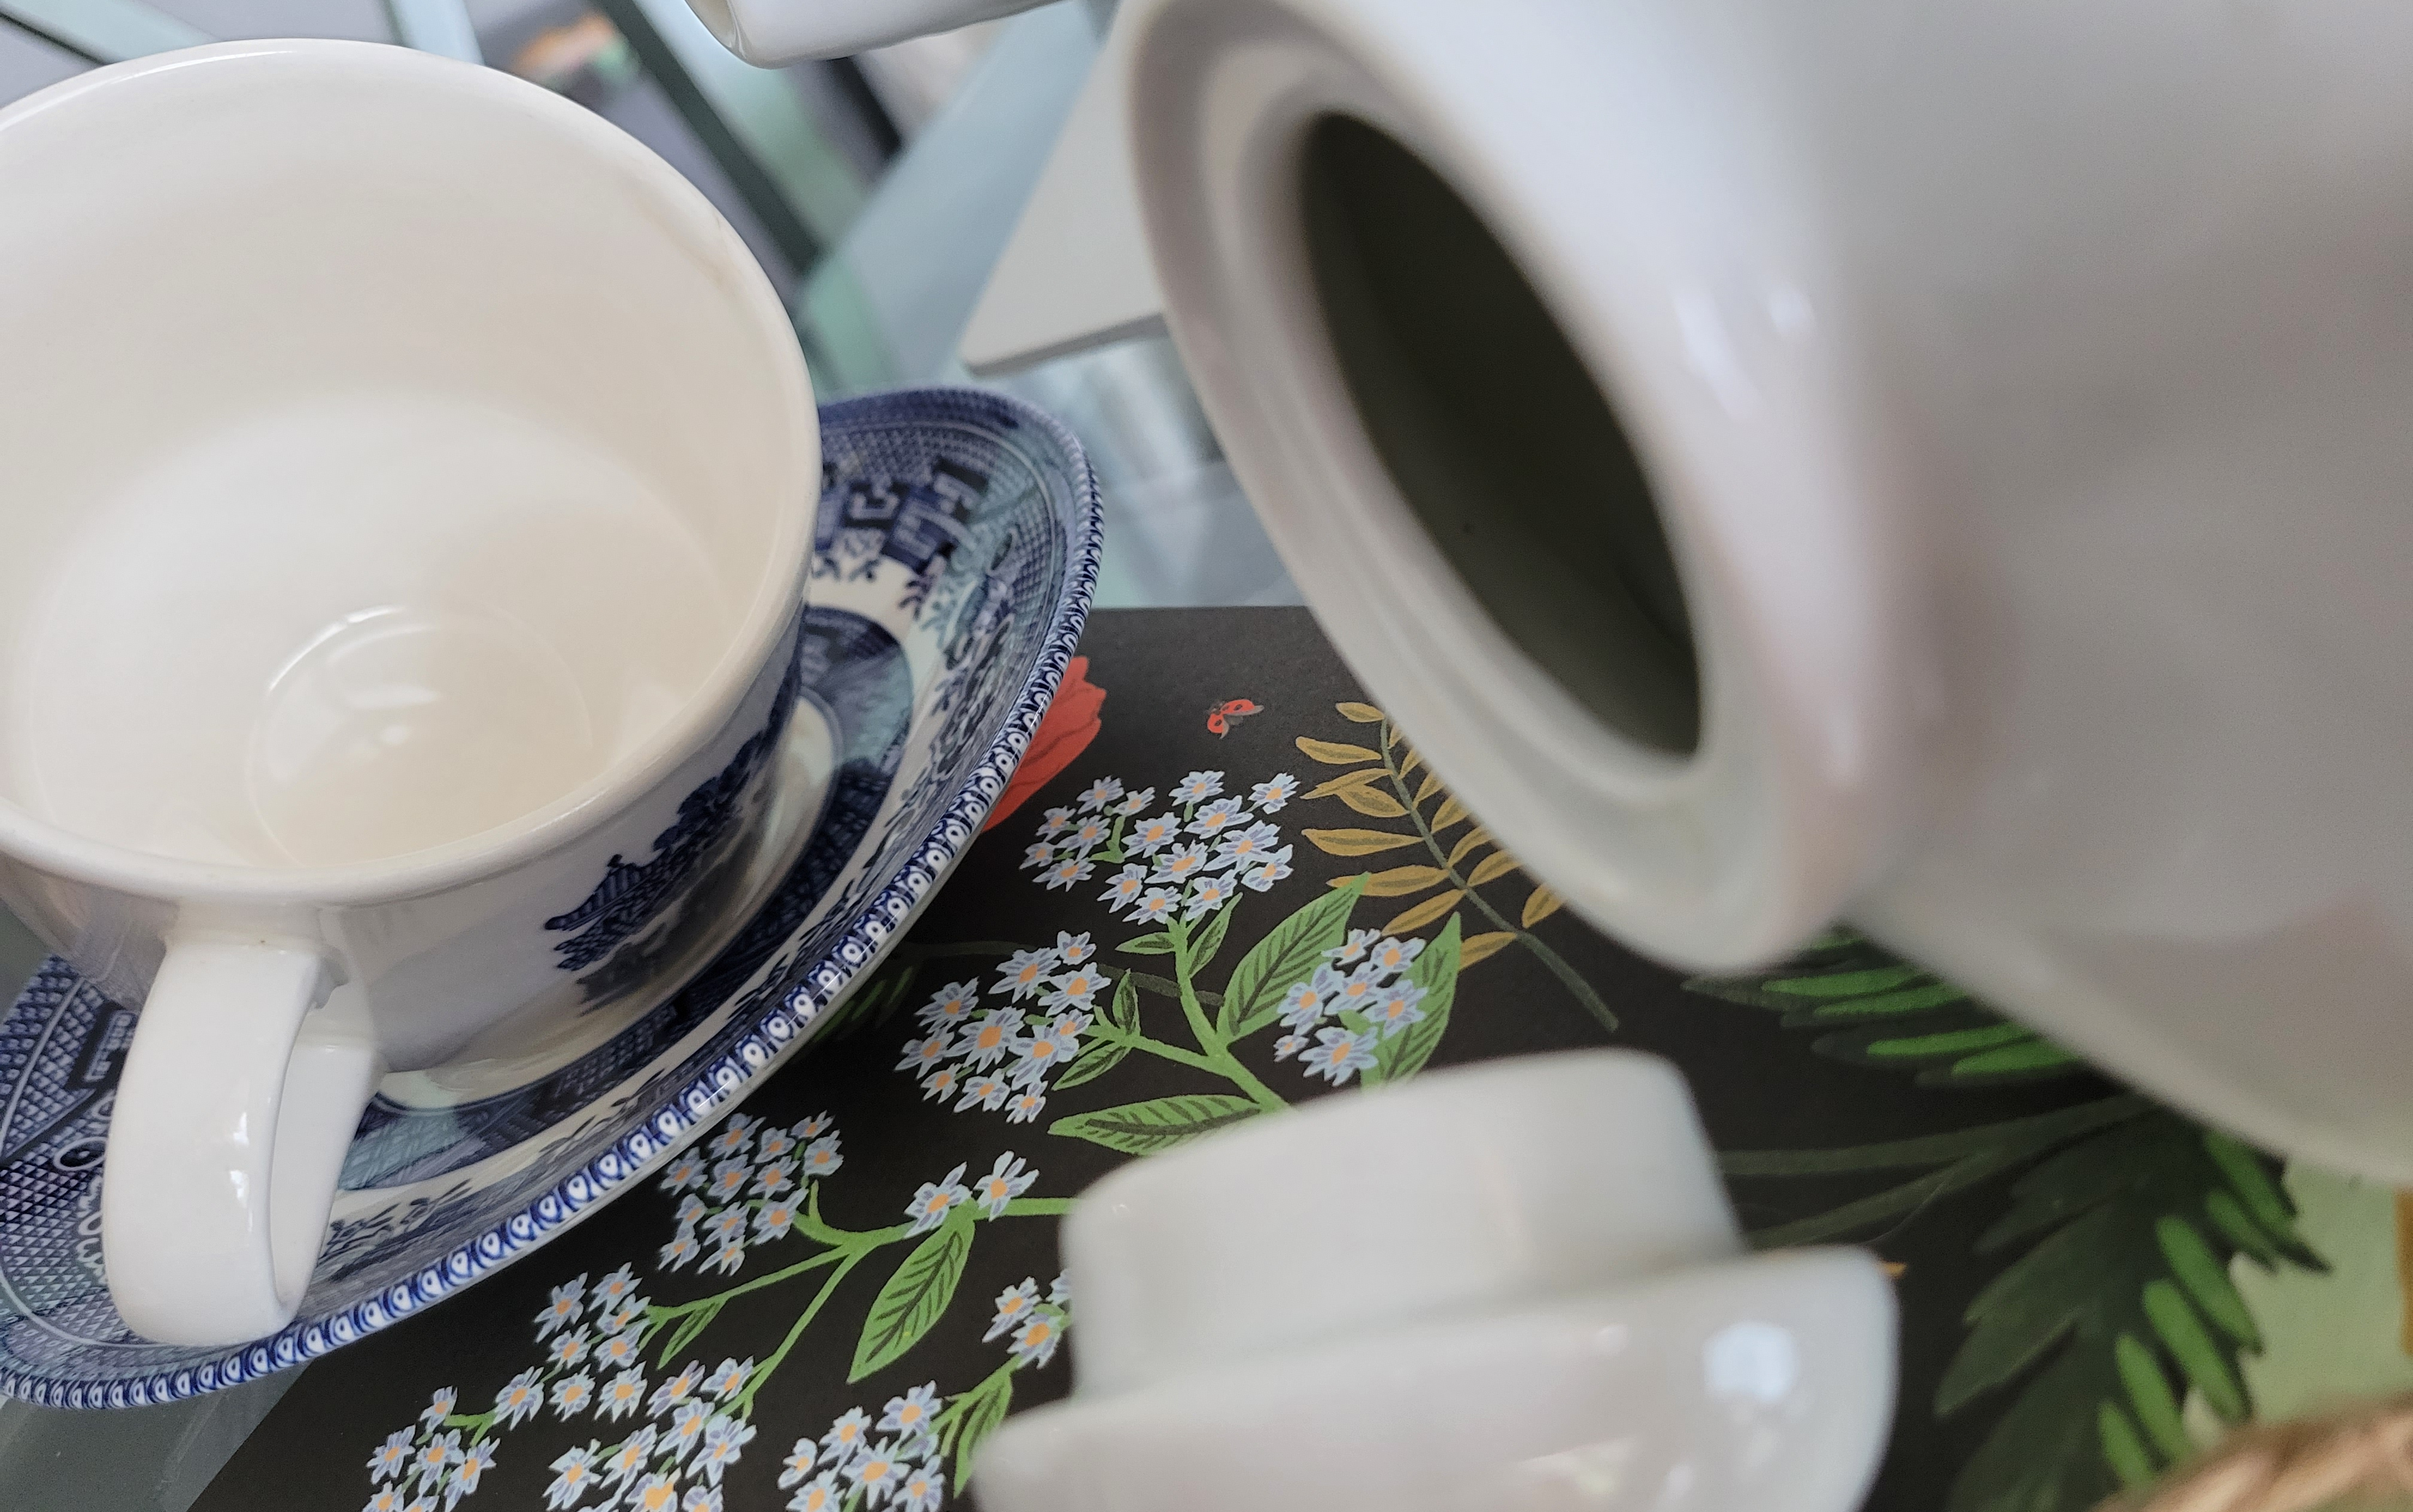 A tilted tea cup and a turned over teapot, the lid lying on a a piece of floral stationary on a glass table.